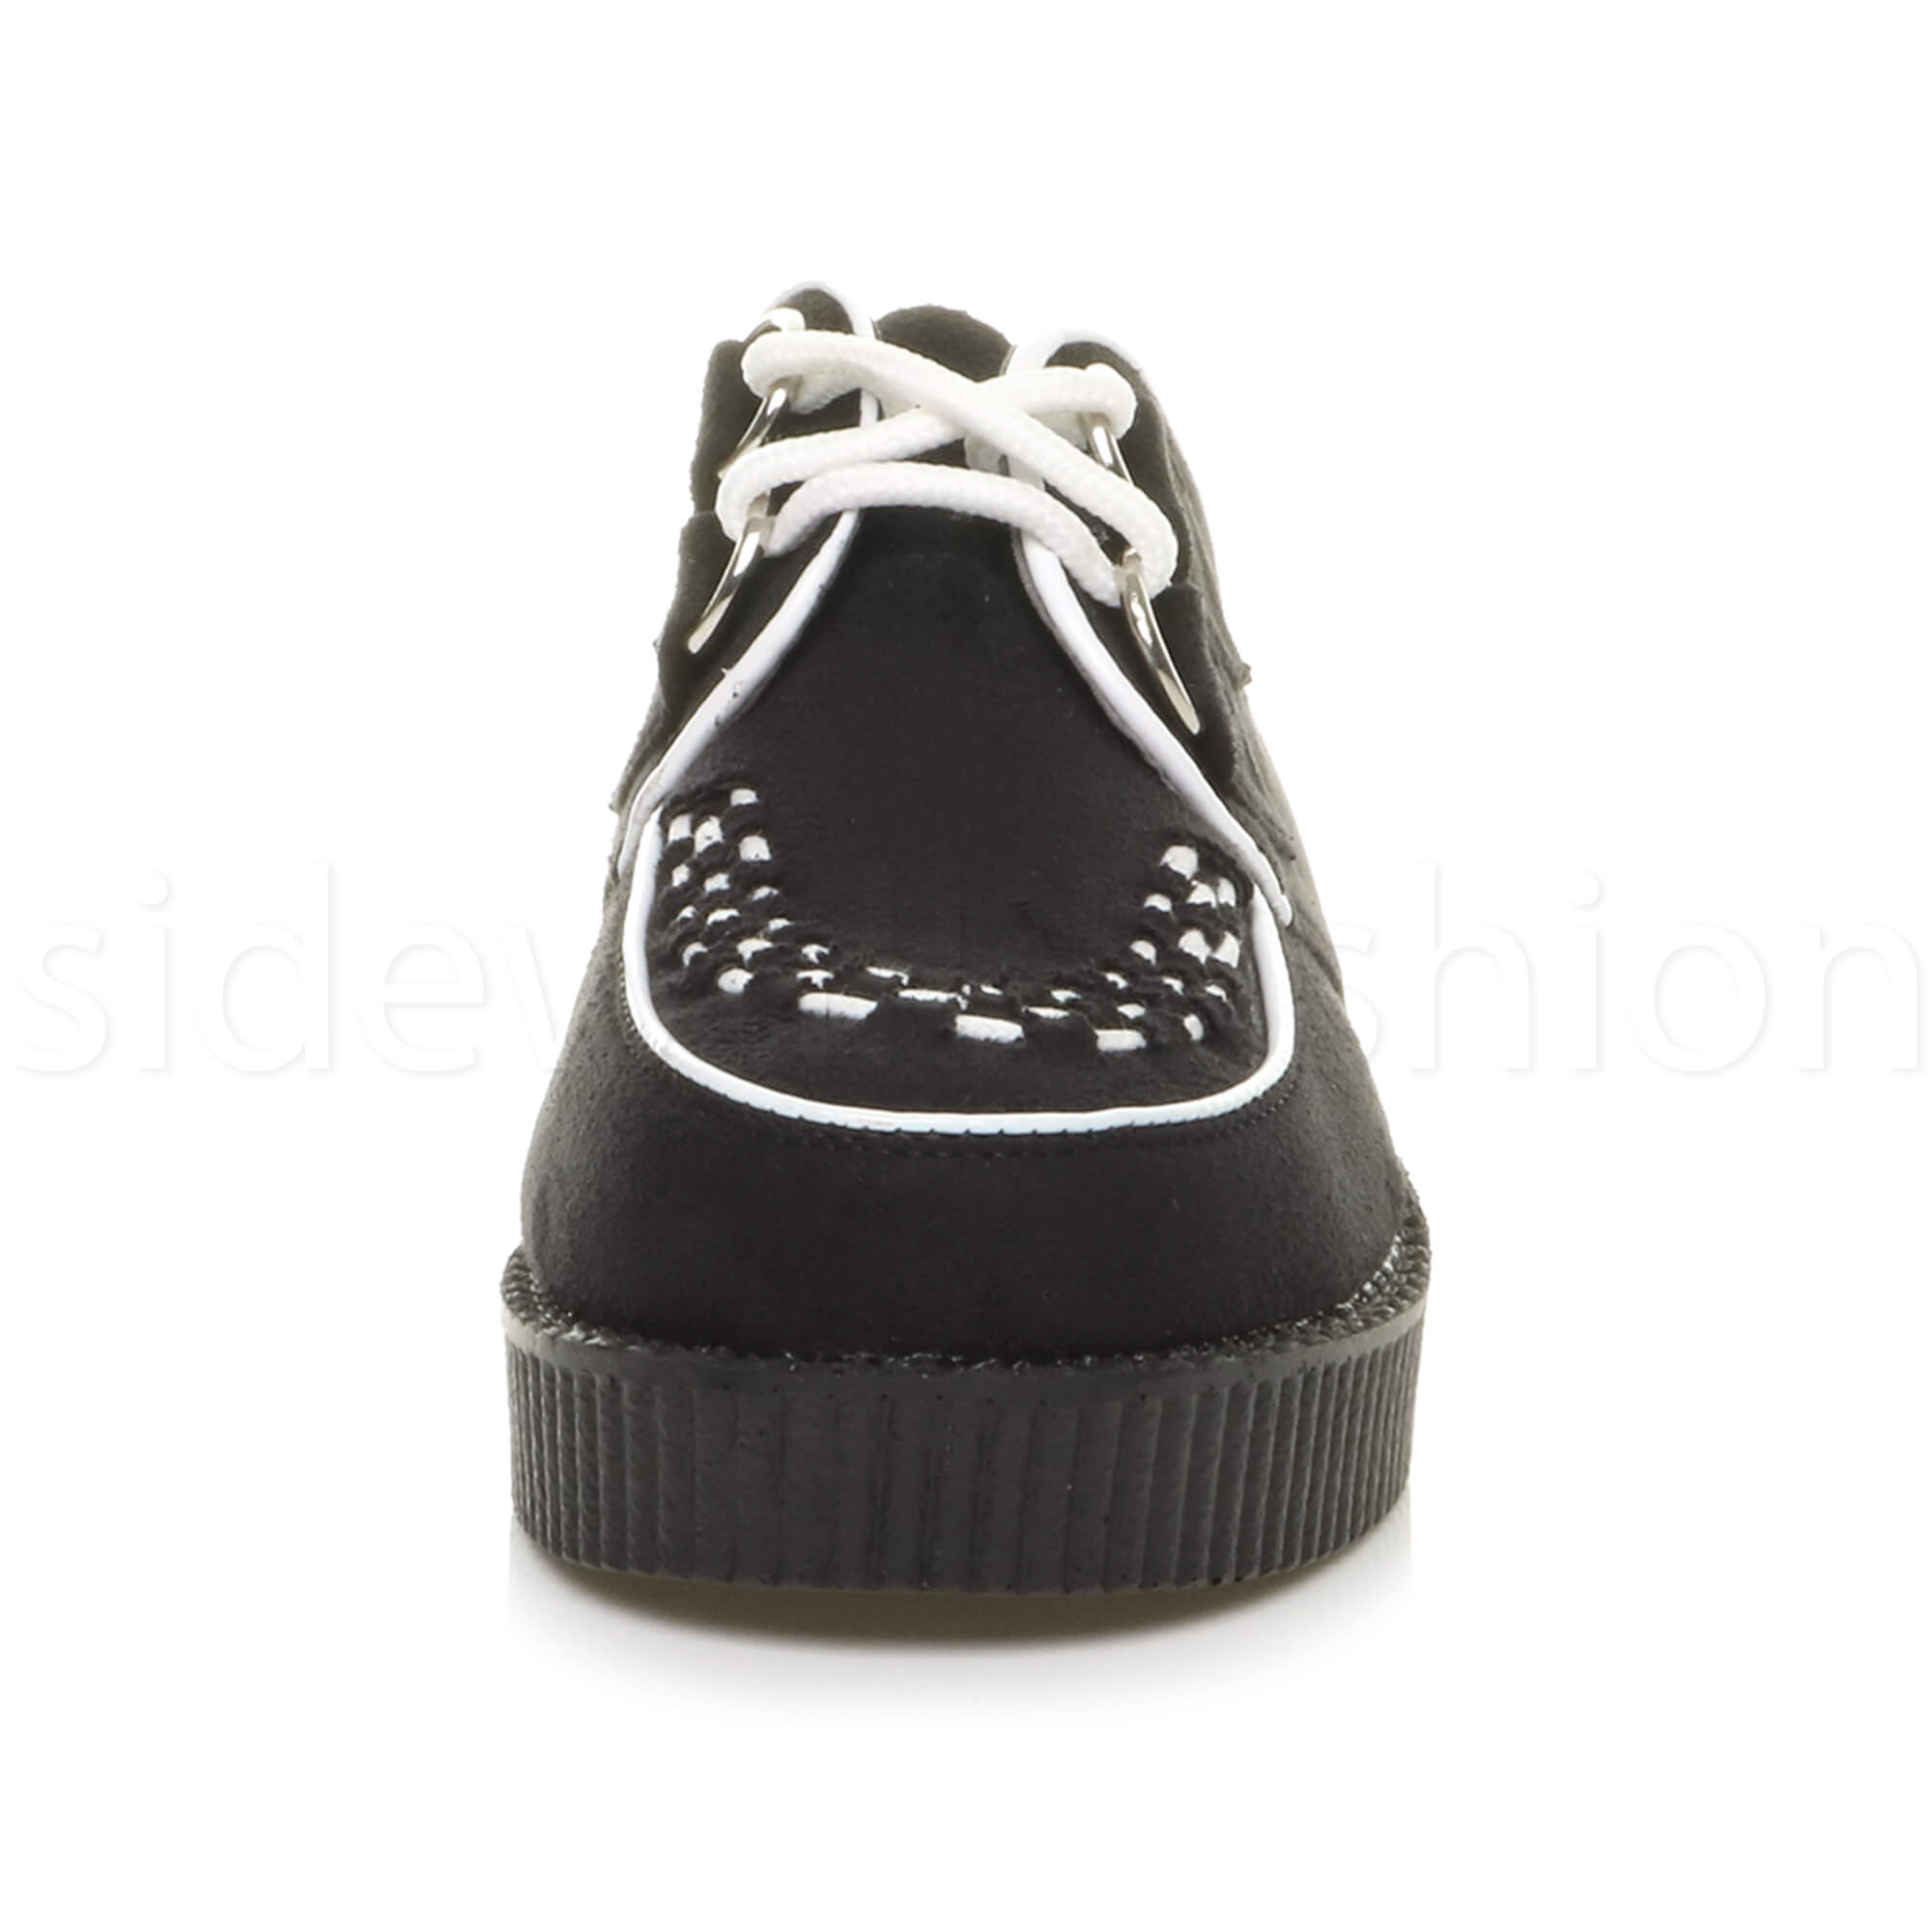 Womens-ladies-flat-platform-wedge-lace-up-goth-punk-creepers-shoes-boots-size miniatura 27